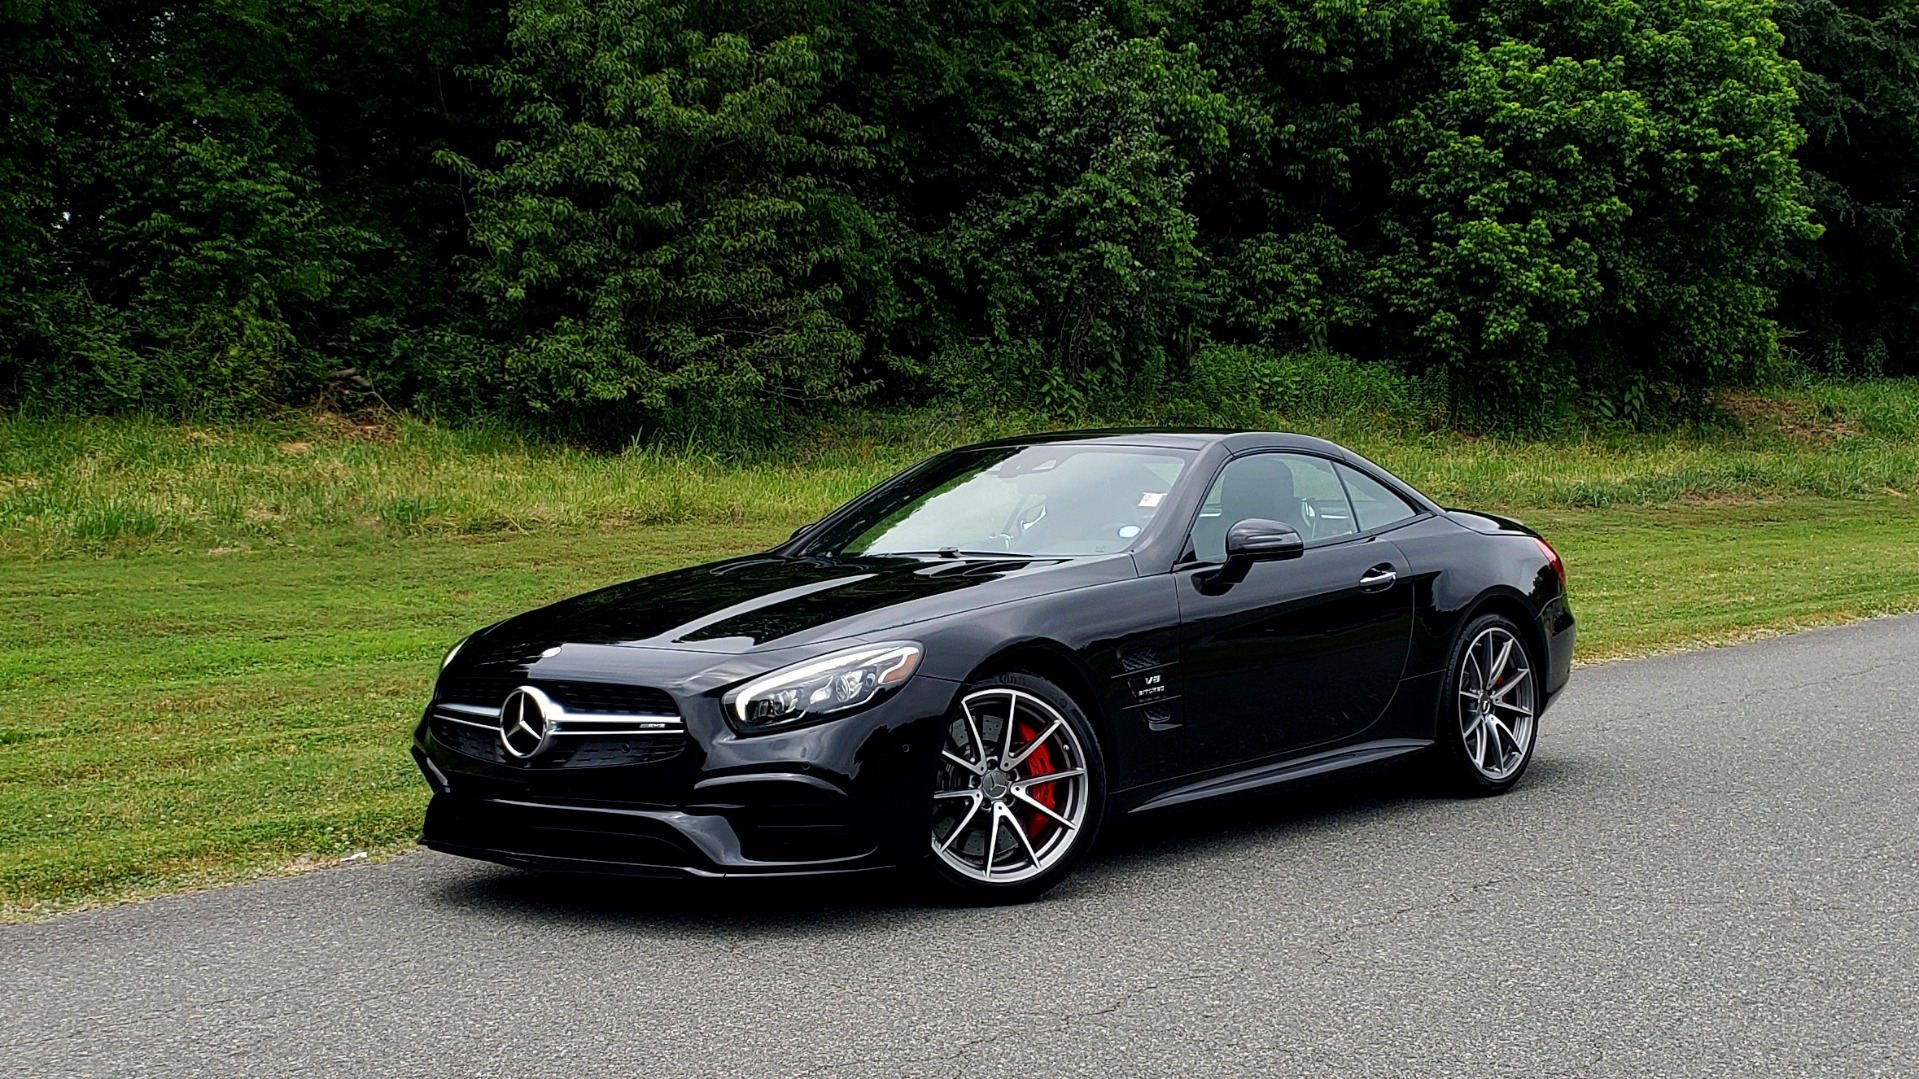 Used 2017 Mercedes-Benz SL 63 AMG / ROADSTER / DRIVER ASSIST / NAV / CAMERA for sale Sold at Formula Imports in Charlotte NC 28227 19